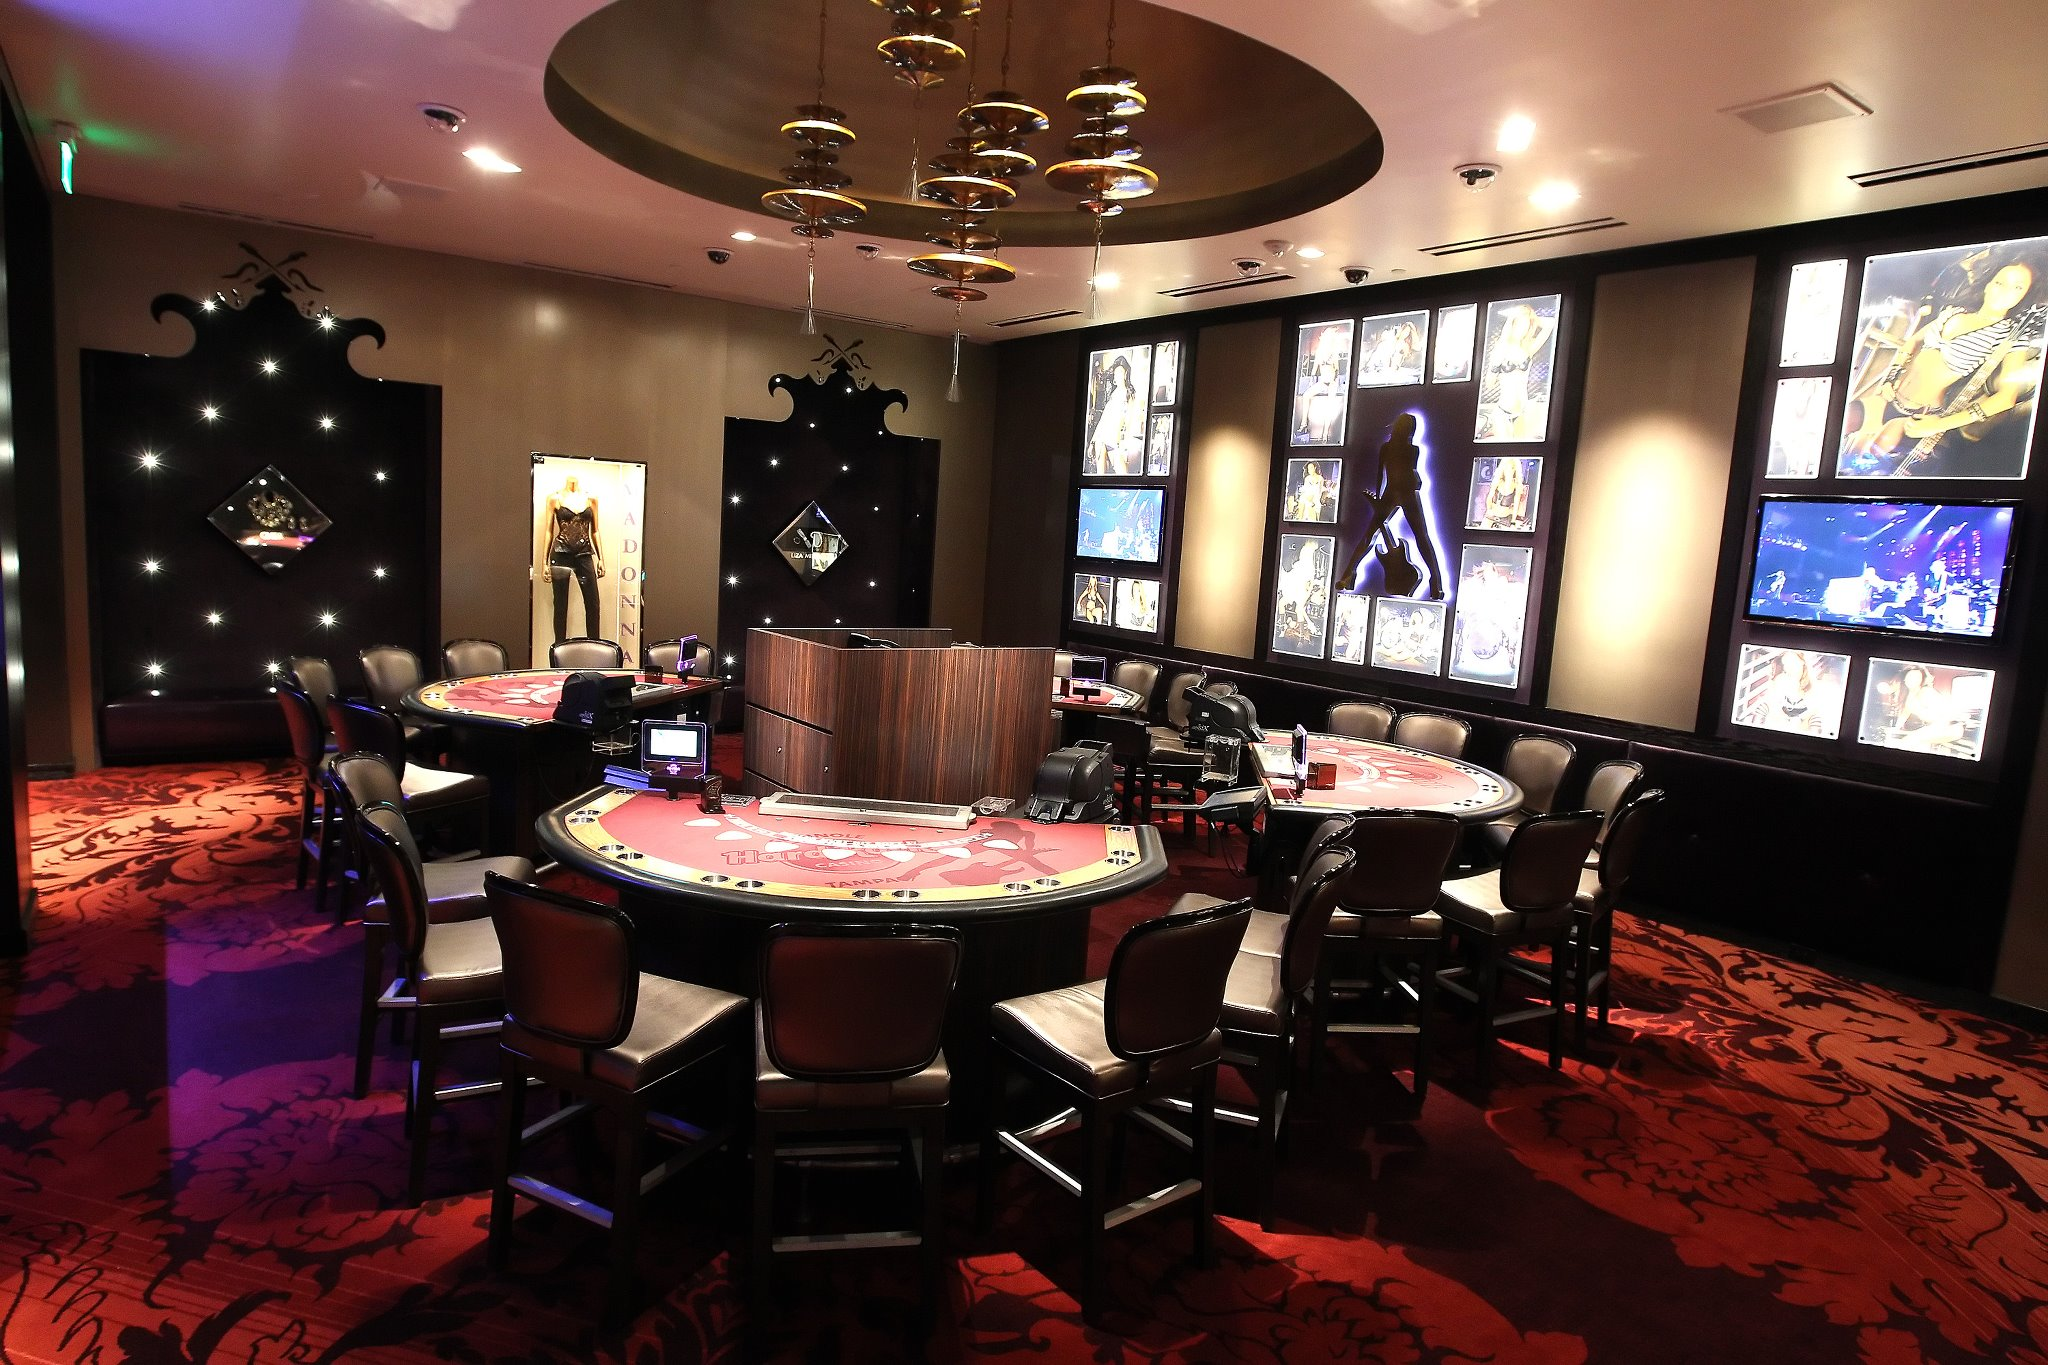 Restaurantes em hard rock casino miami